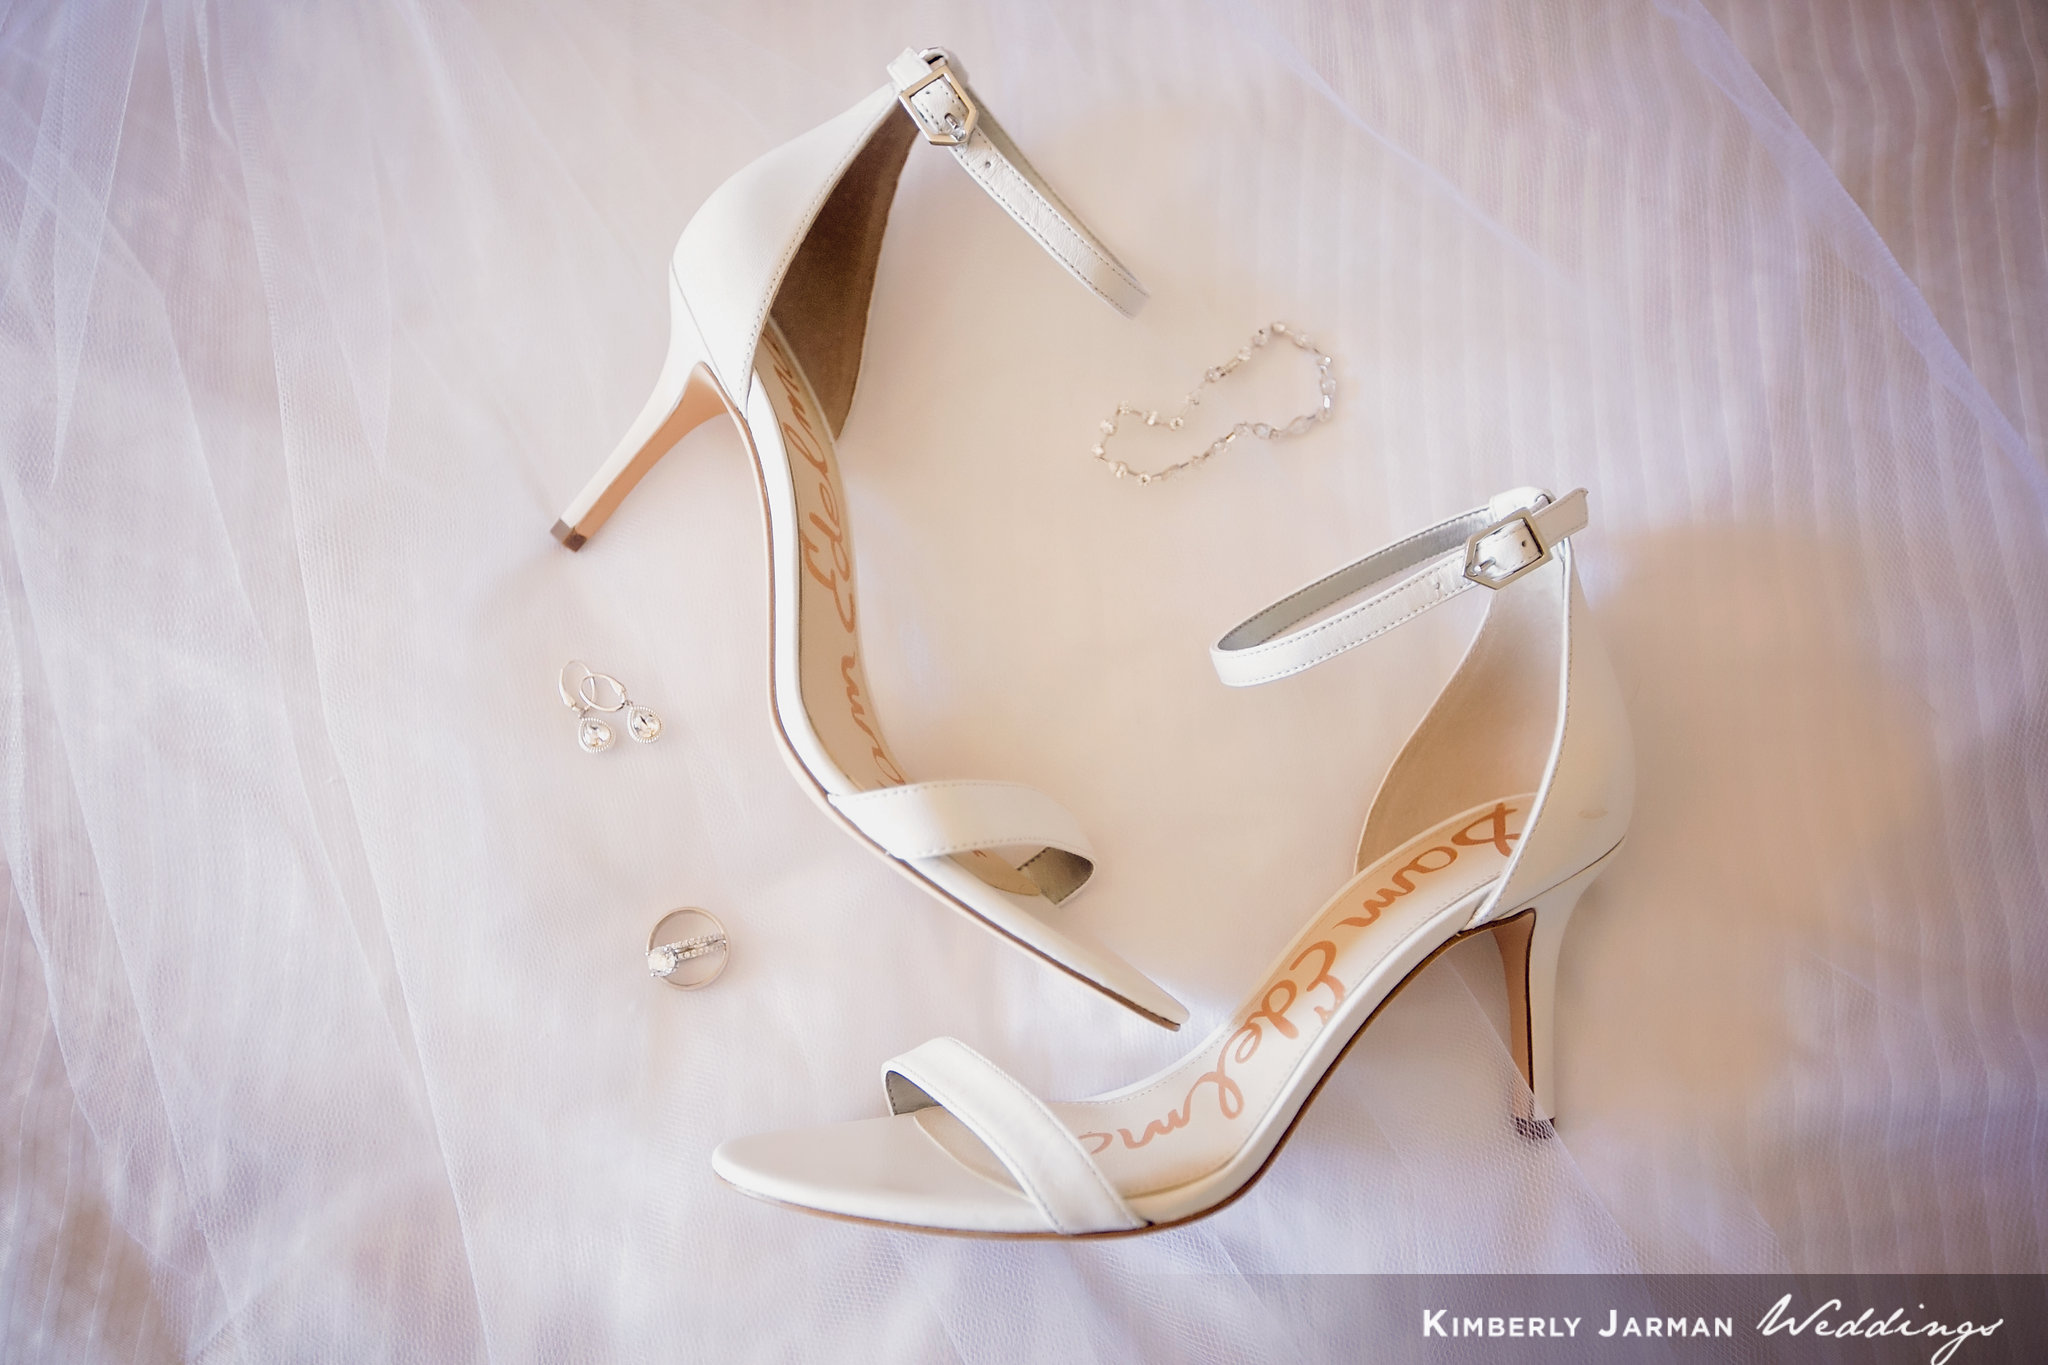 Classic, elegant wedding, white and gold wedding, bridal shoes, bridal details.